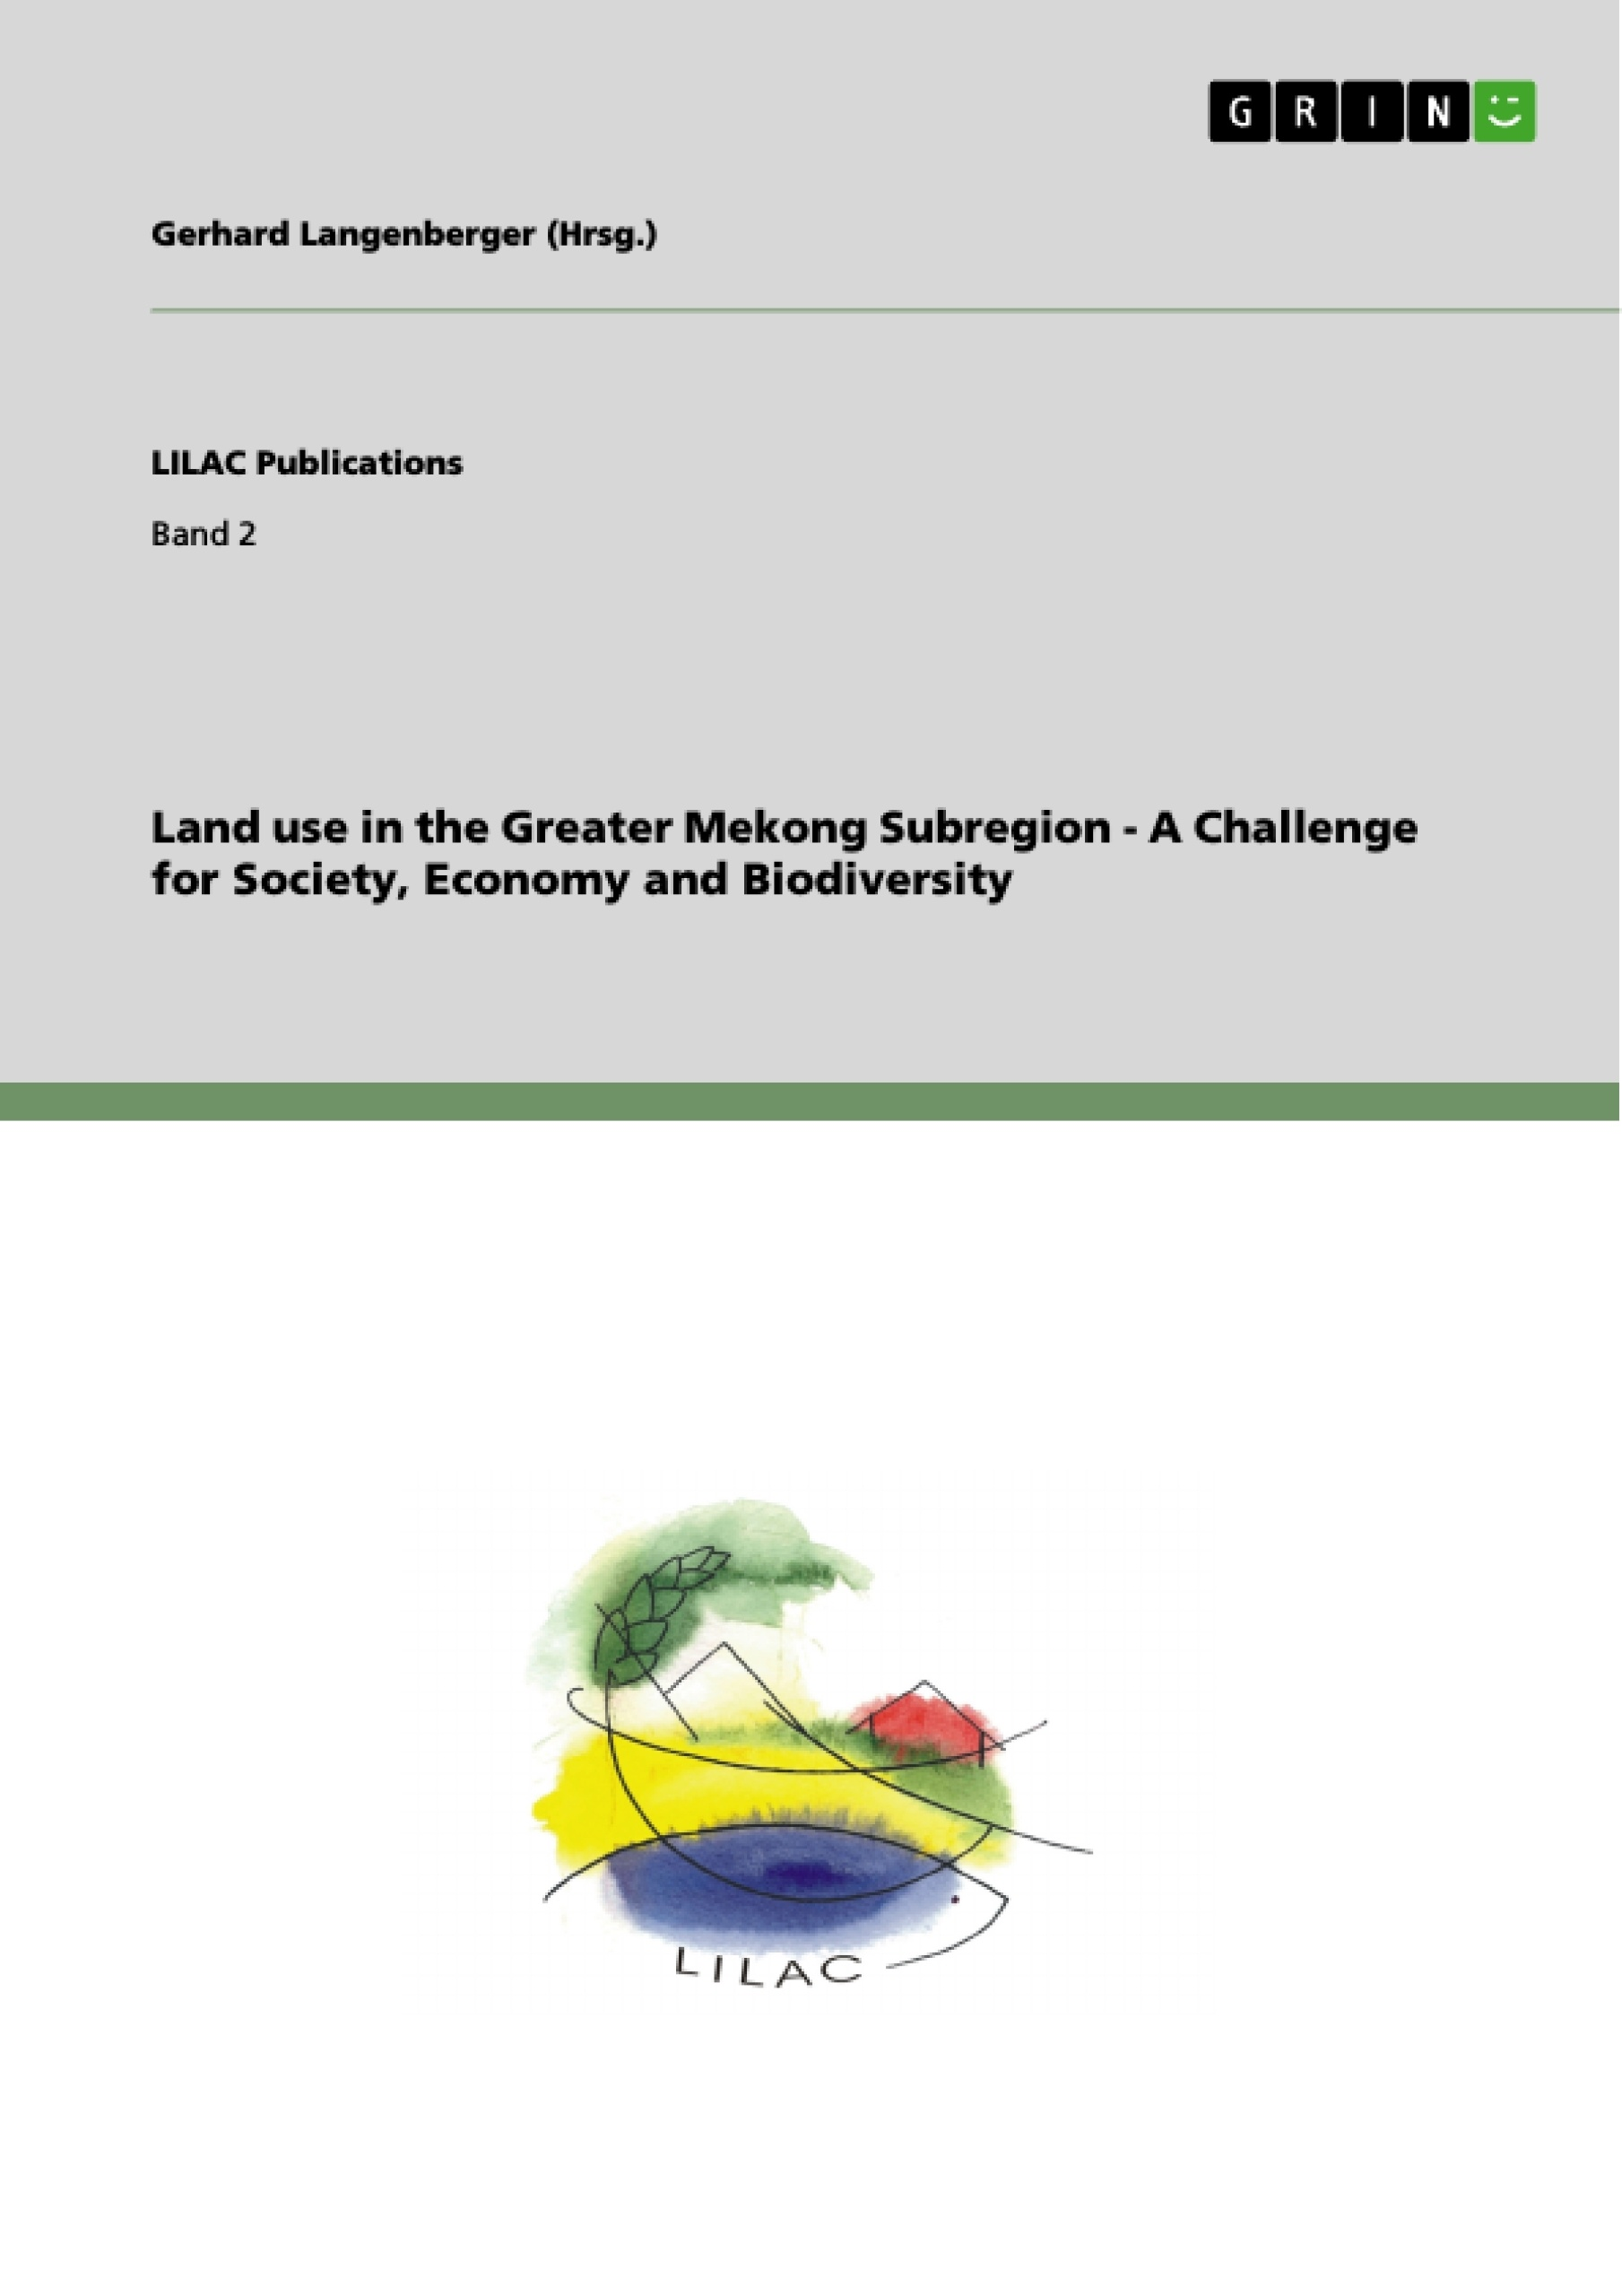 Title: Land use in the Greater Mekong Subregion - A Challenge for Society, Economy and Biodiversity